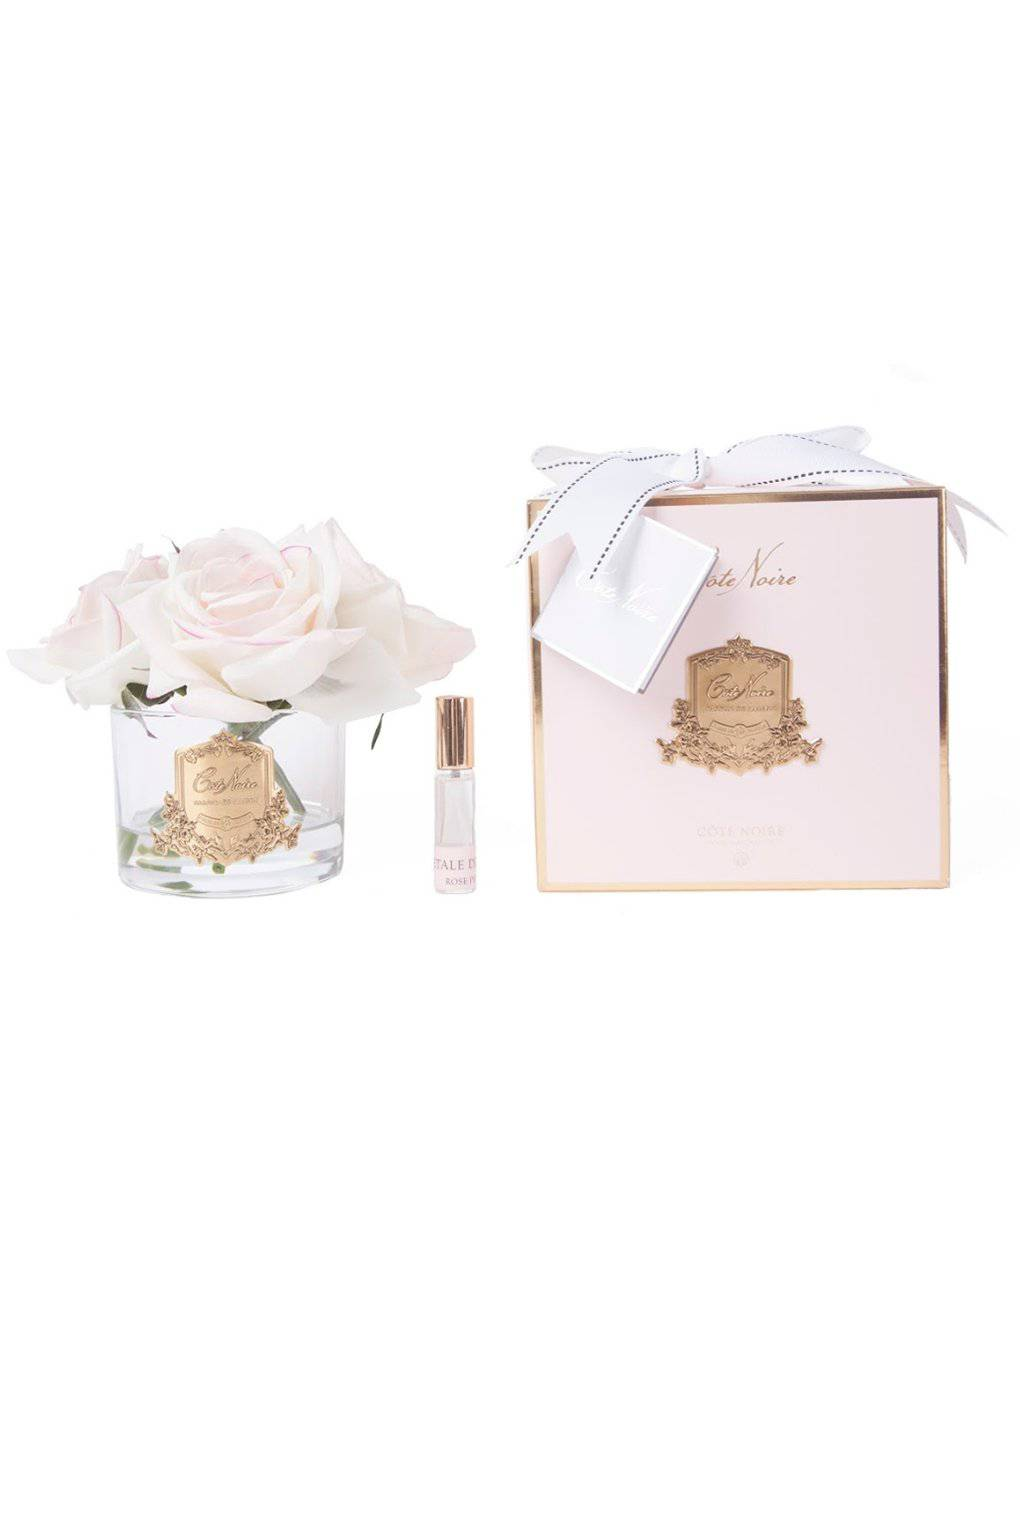 COTE NOIRE Five Perfumed Blush Roses - Clear and Gold Glass - Cote Noire - [product type] - Magpie Style